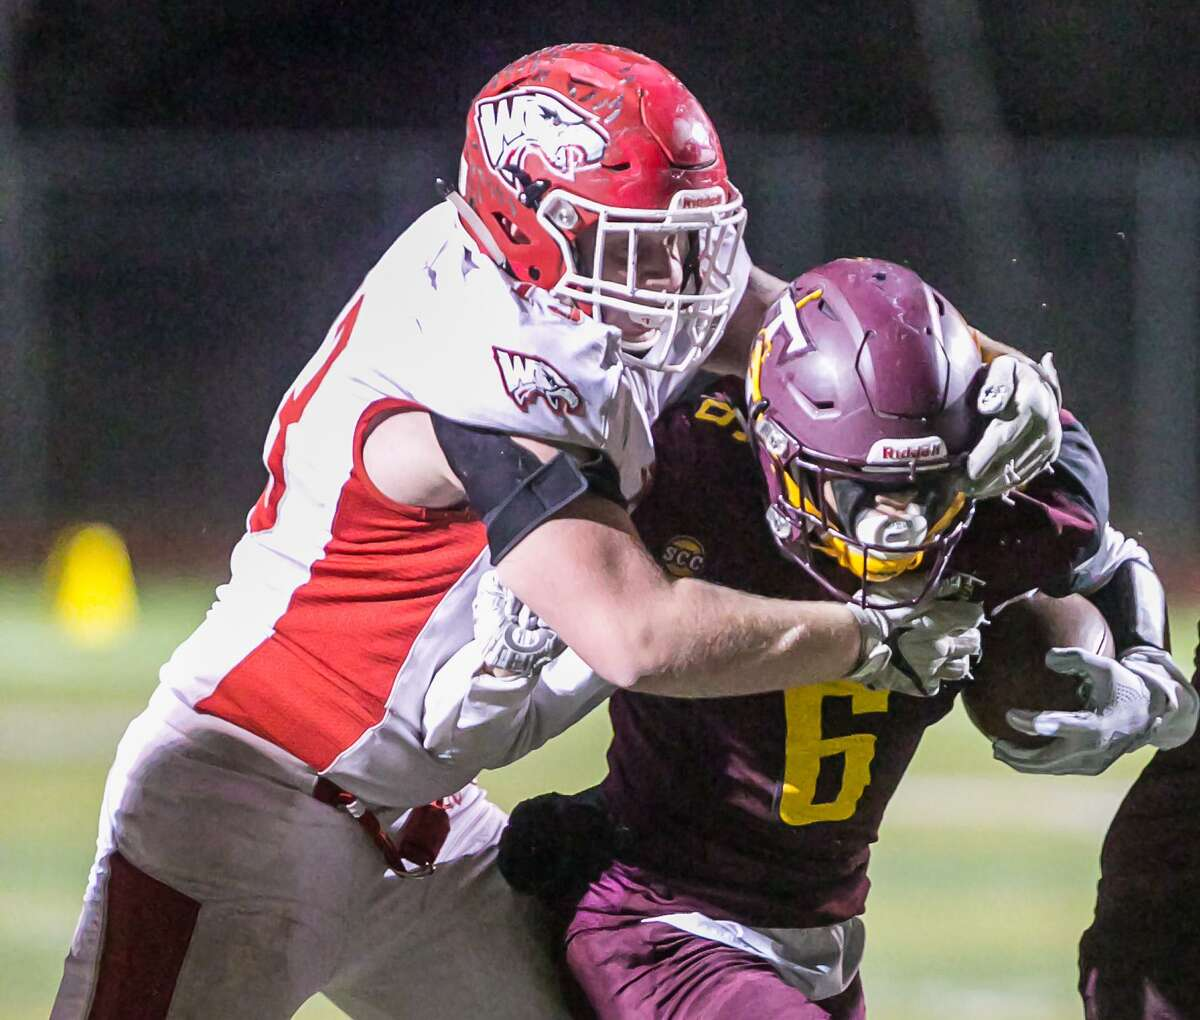 (John Vanacore/For Hearst Connecticut Media) Sheehan's Jake Smith battles for yardage against Wolcott defensive tackle Dean Howell during their CIAC Class M quarterfinal game in Wallingford Tuesday.